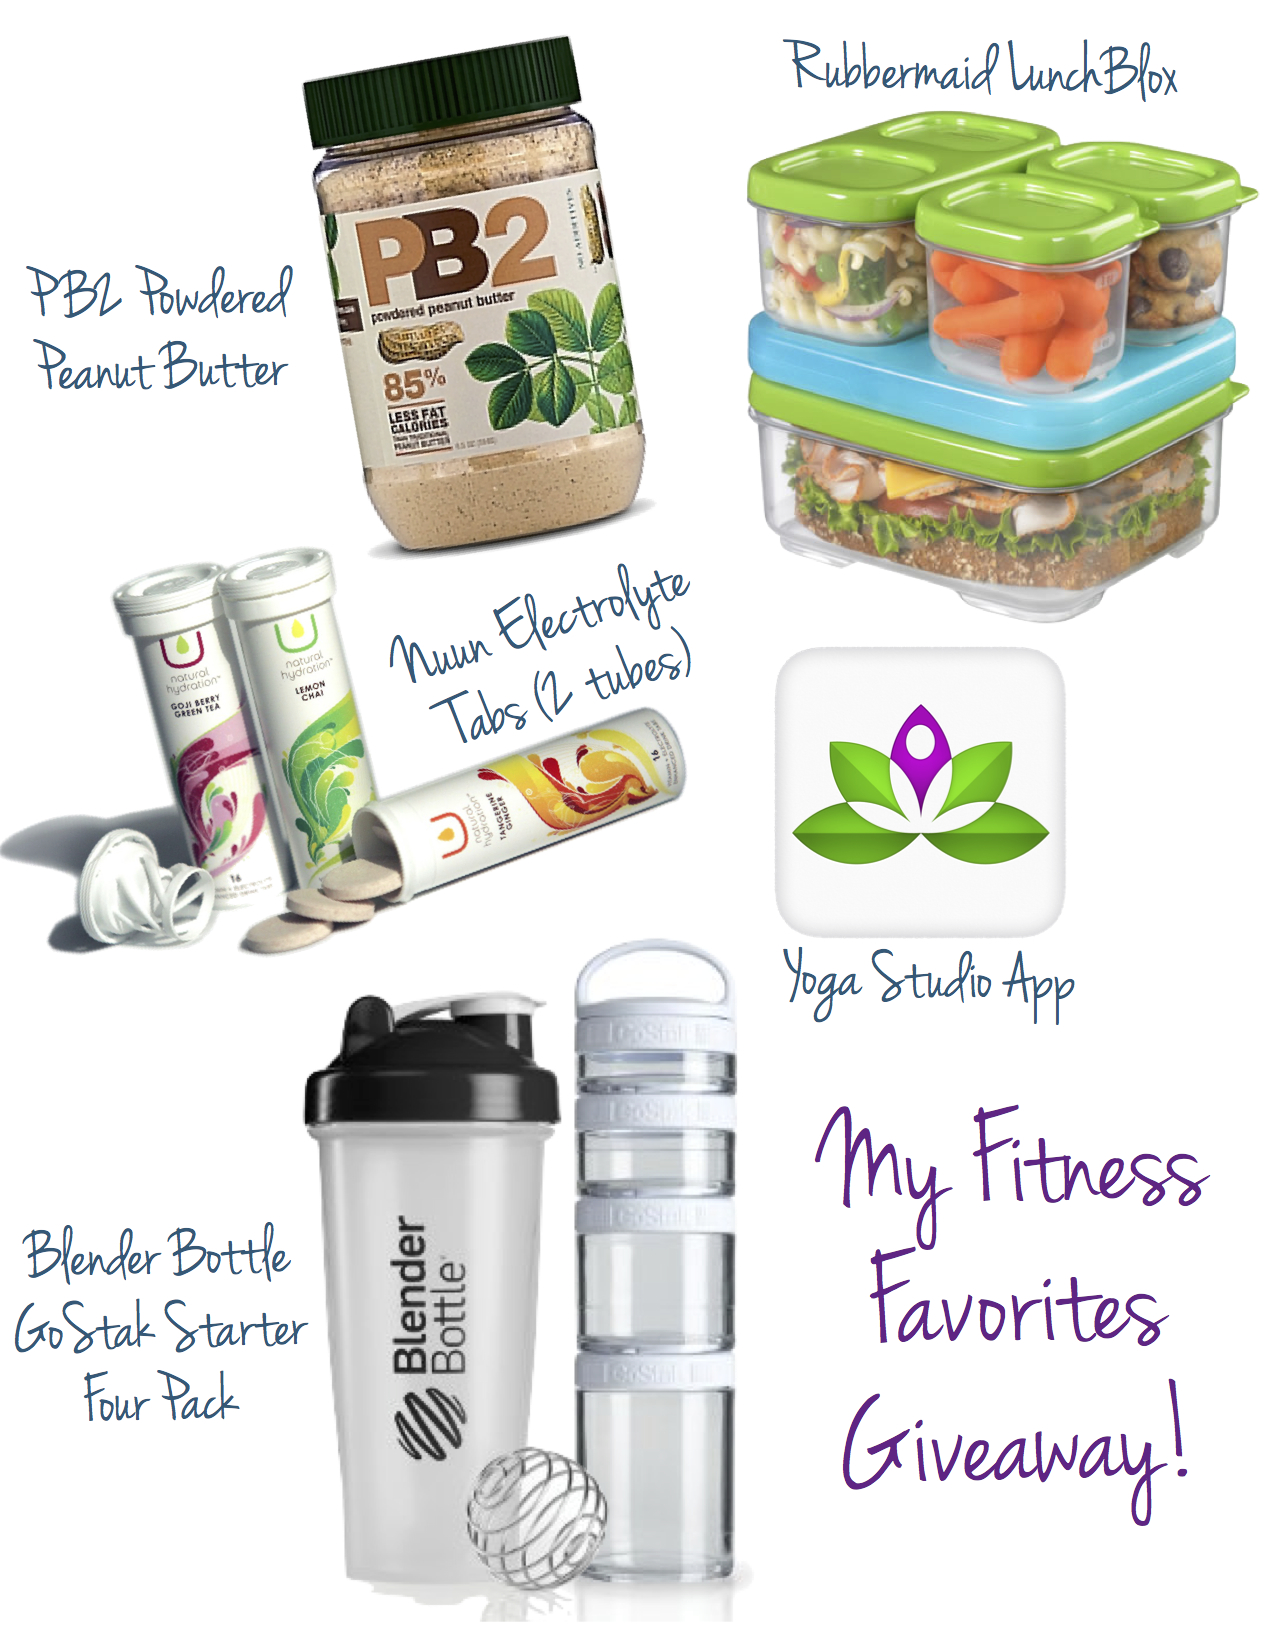 my fitness faves giveaway